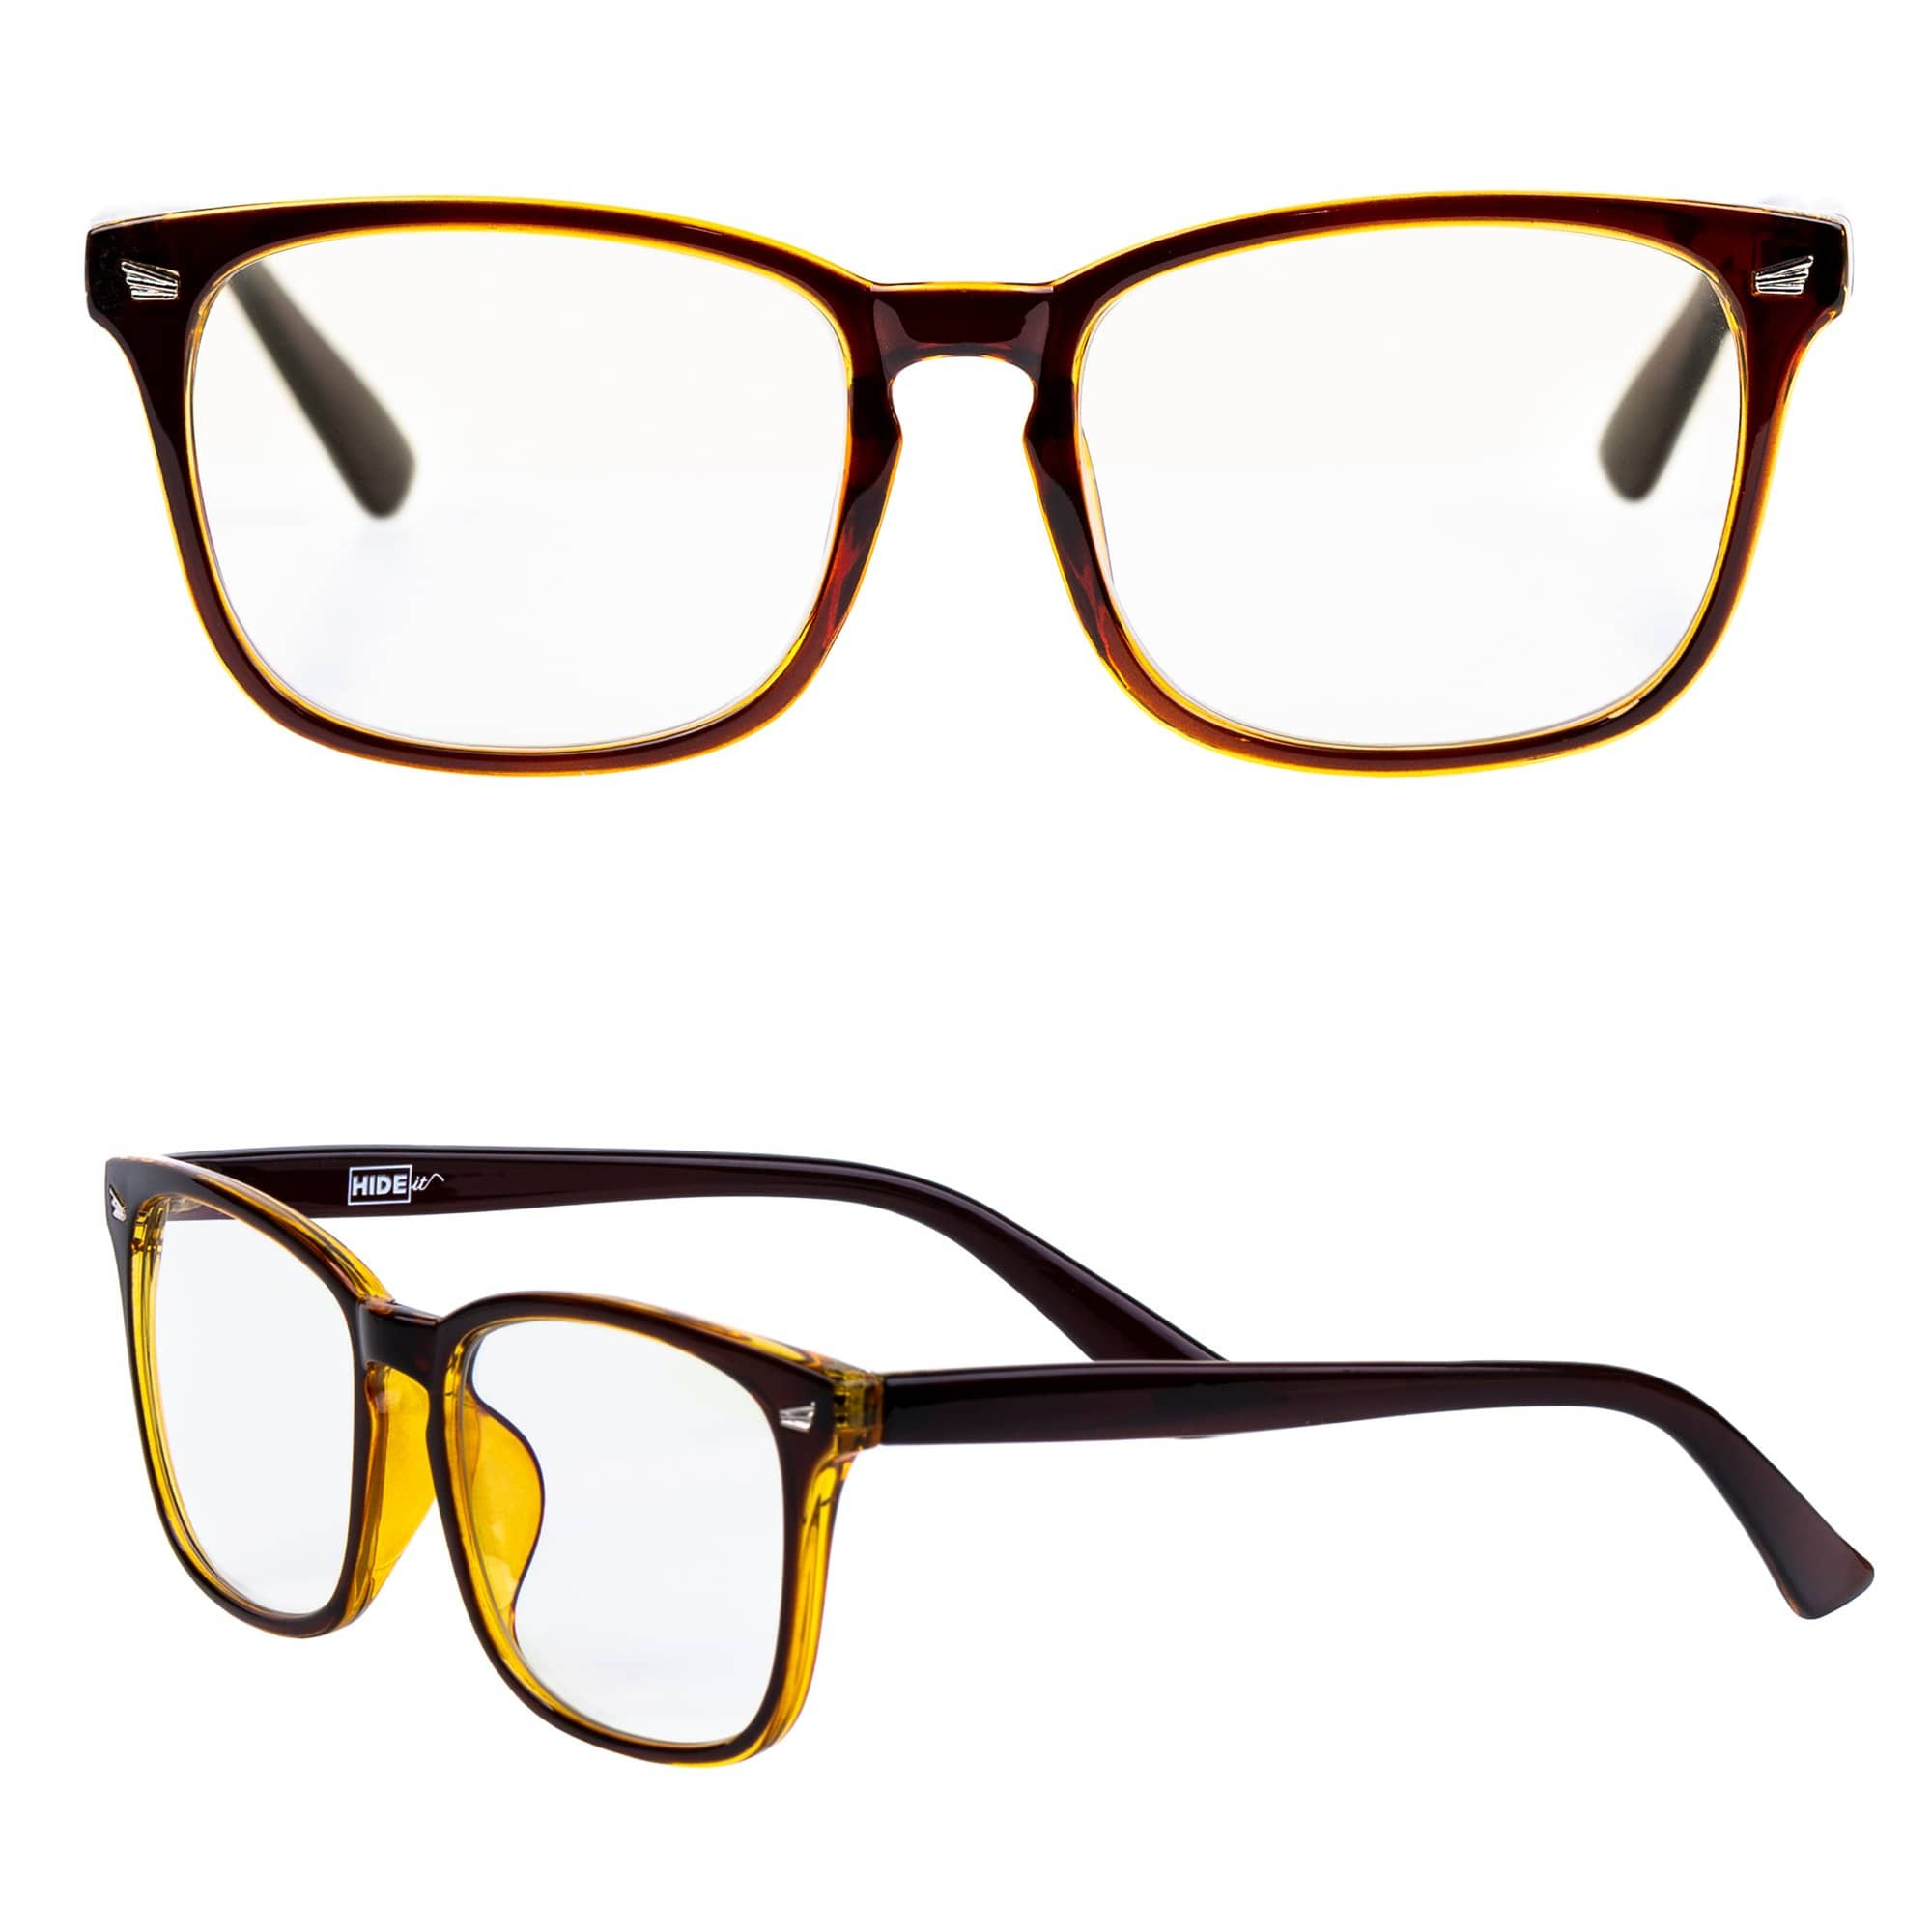 Brown and amber computer glasses reduce eye strain and other negative effects of blue light from electronics.